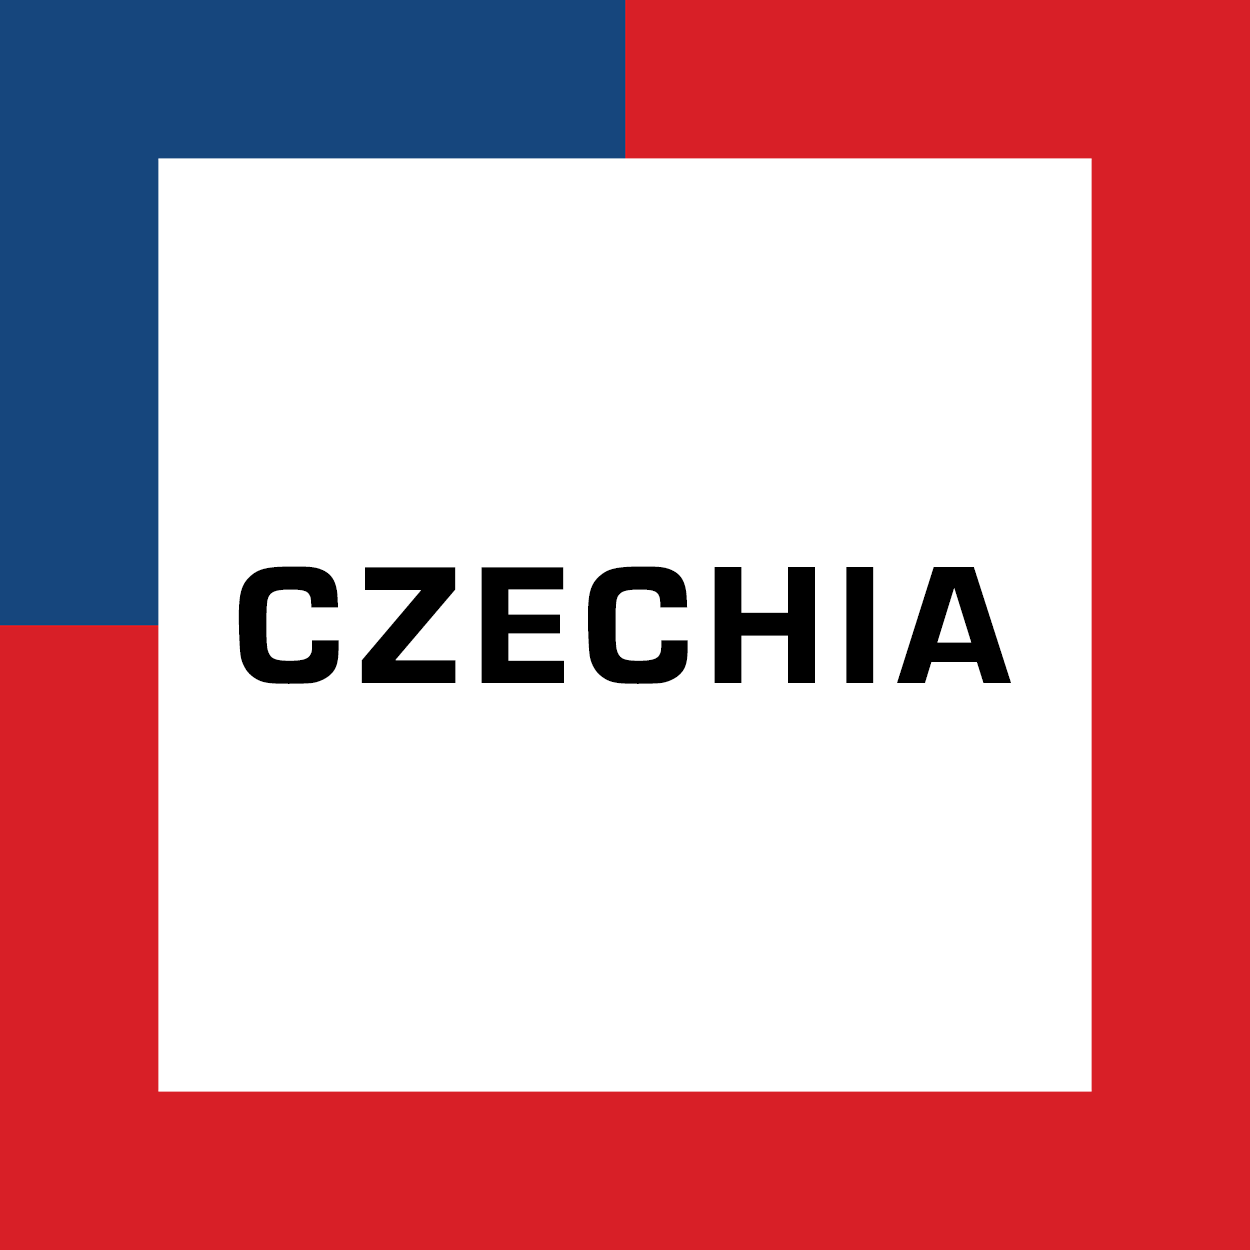 The name Czechia surrounded by the colors of the Czech flag